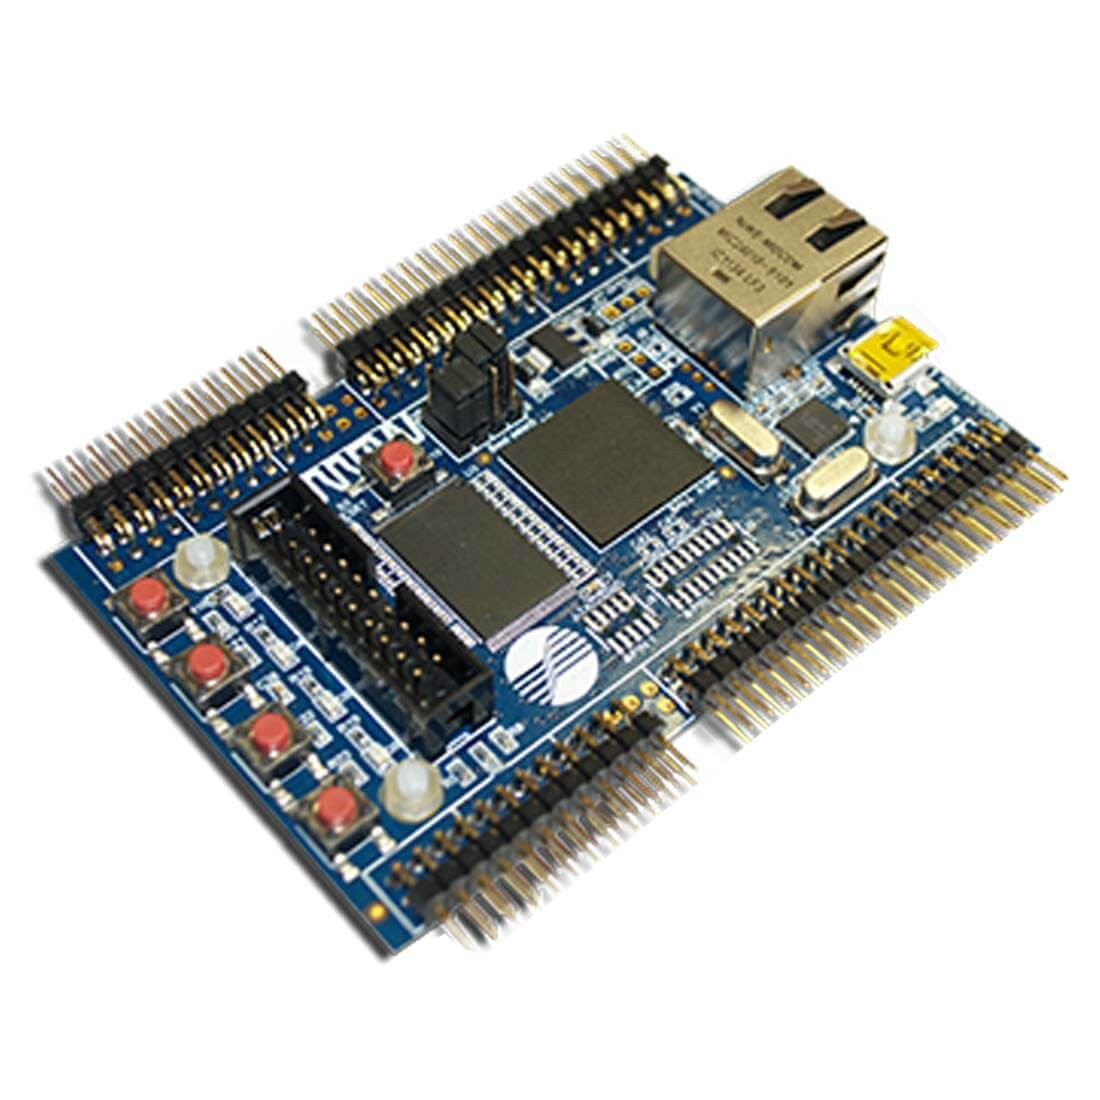 LPC1850-DB1-C Development Board (with external 64 Mbit SDRAM and connectors)